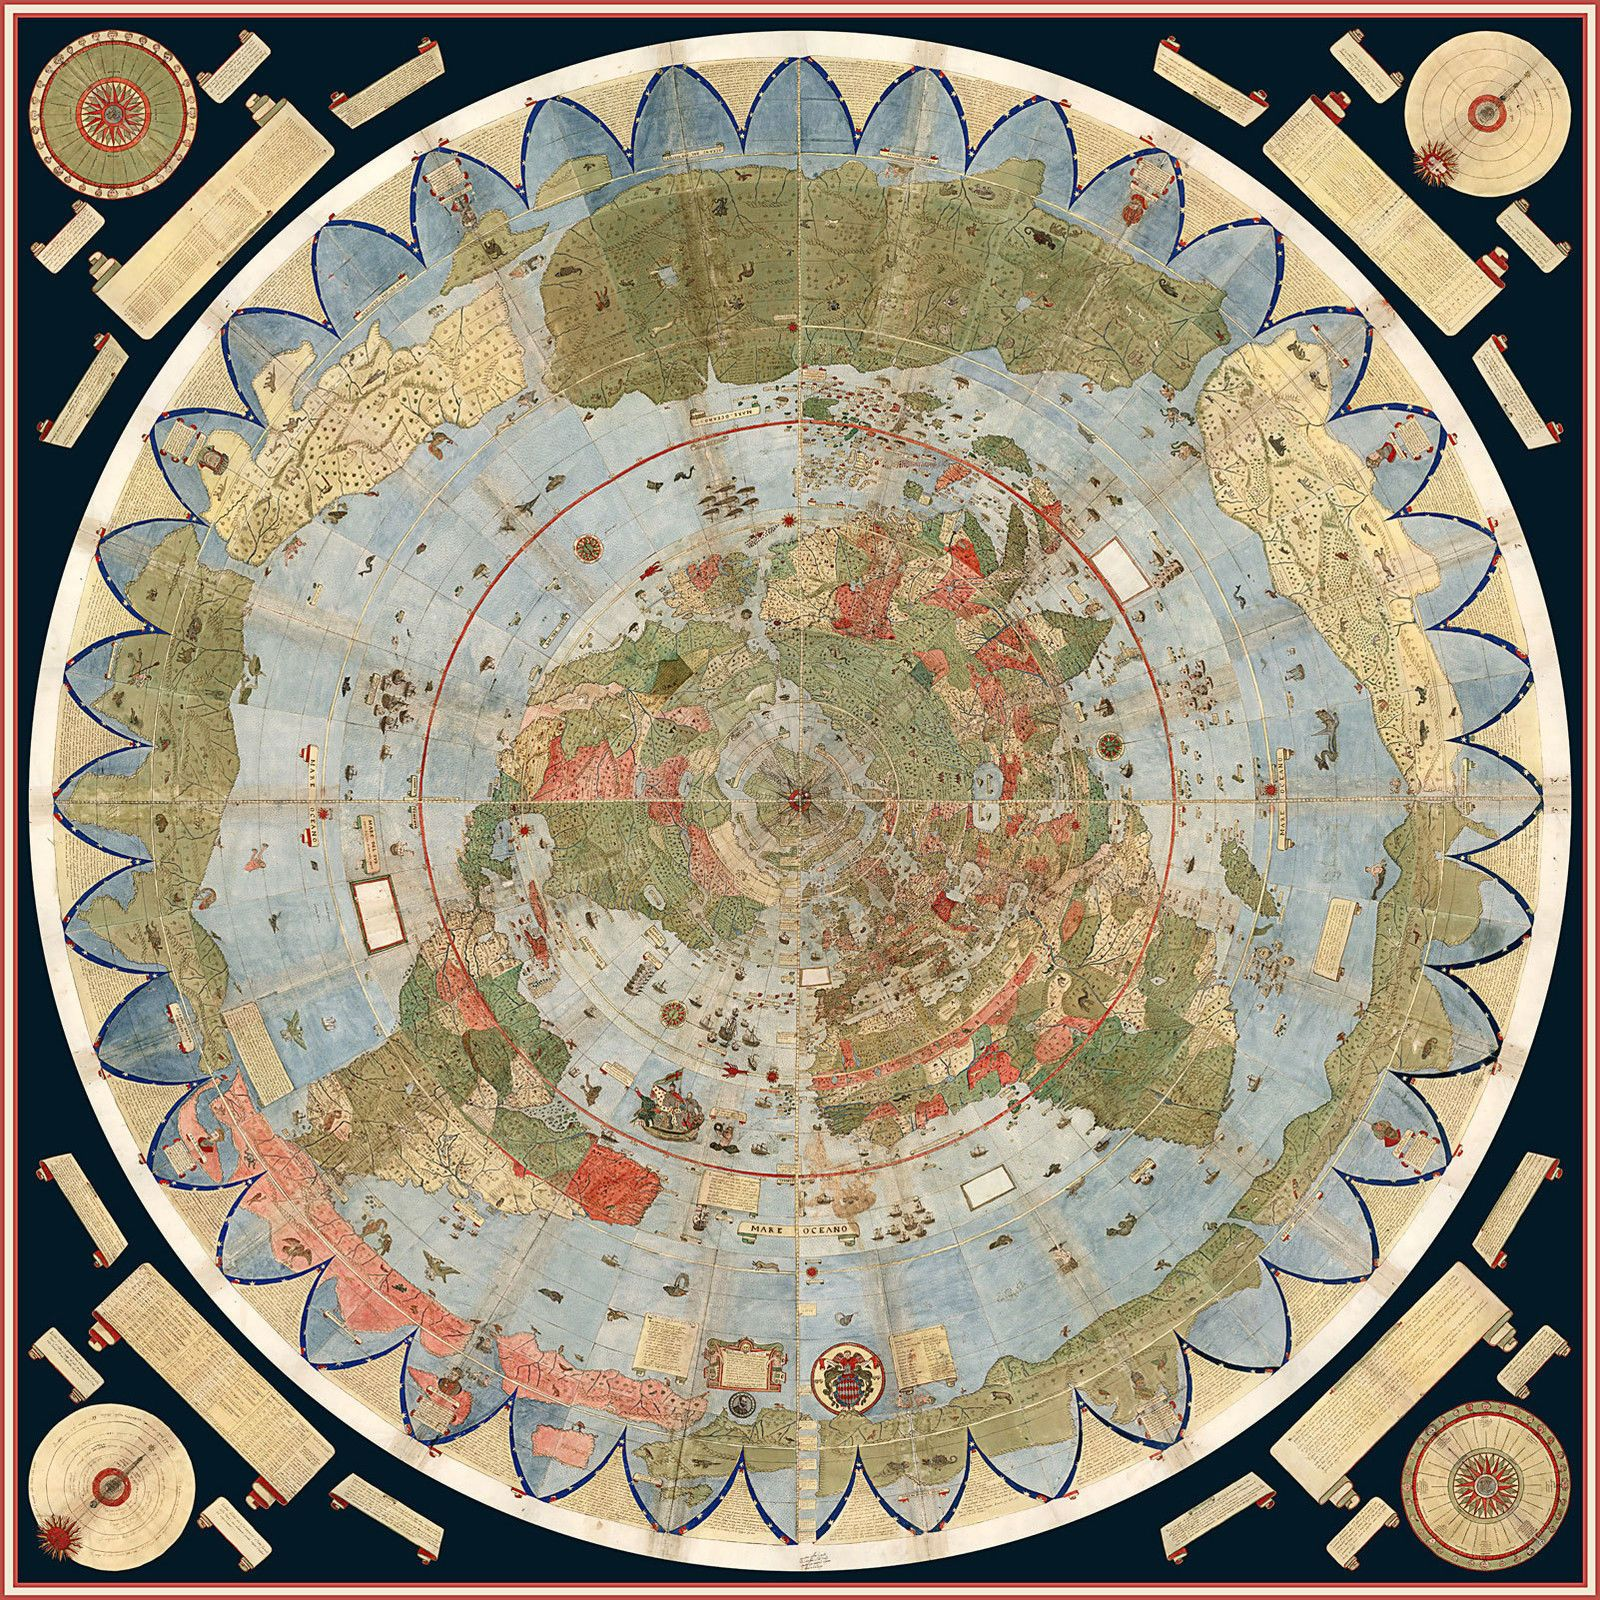 Details about 1587 Flat Earth Map of the World Urbano Monte